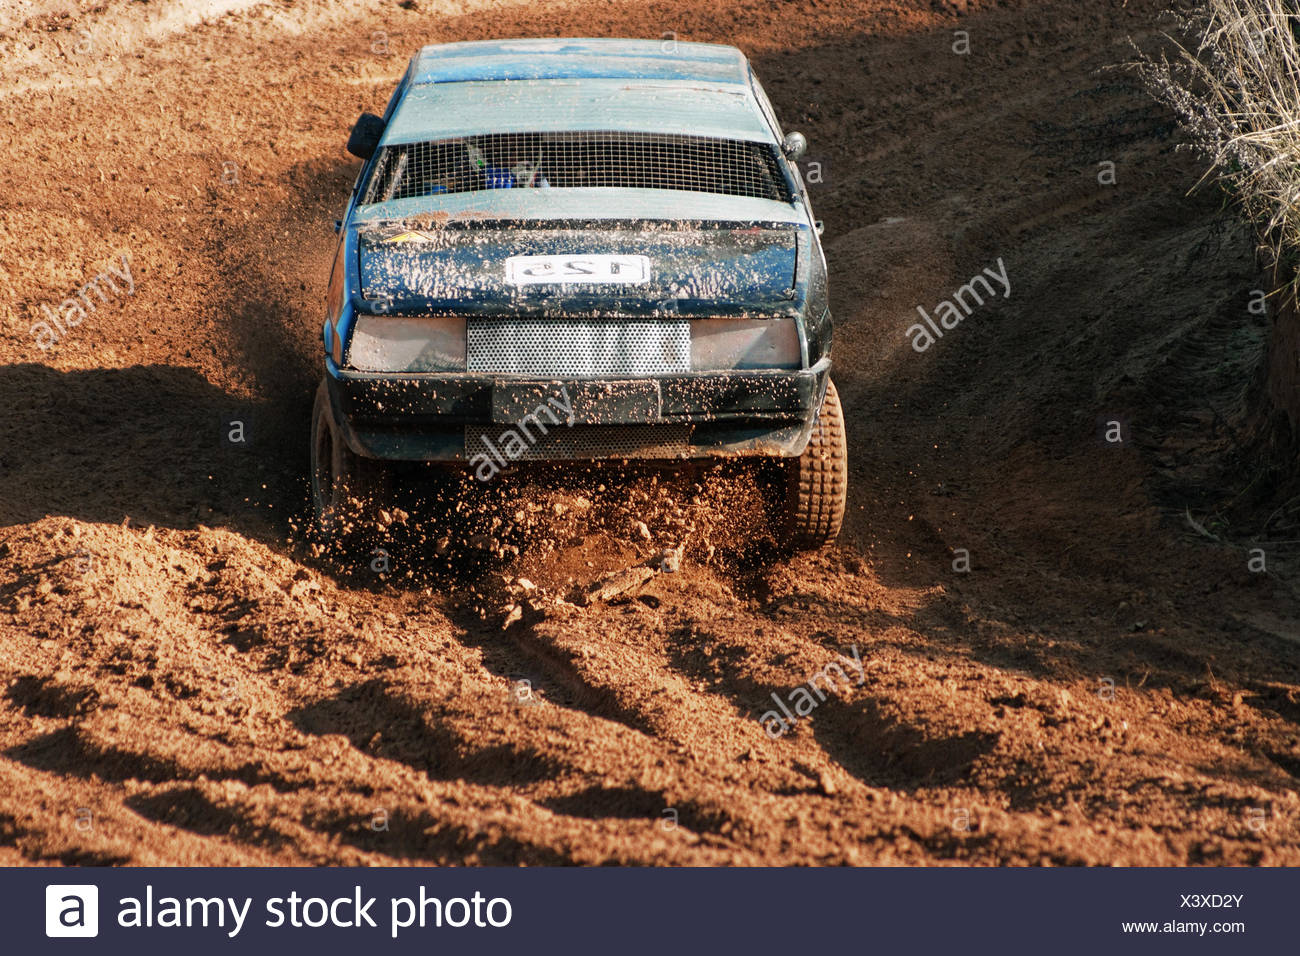 The black car on extreme races - Stock Image